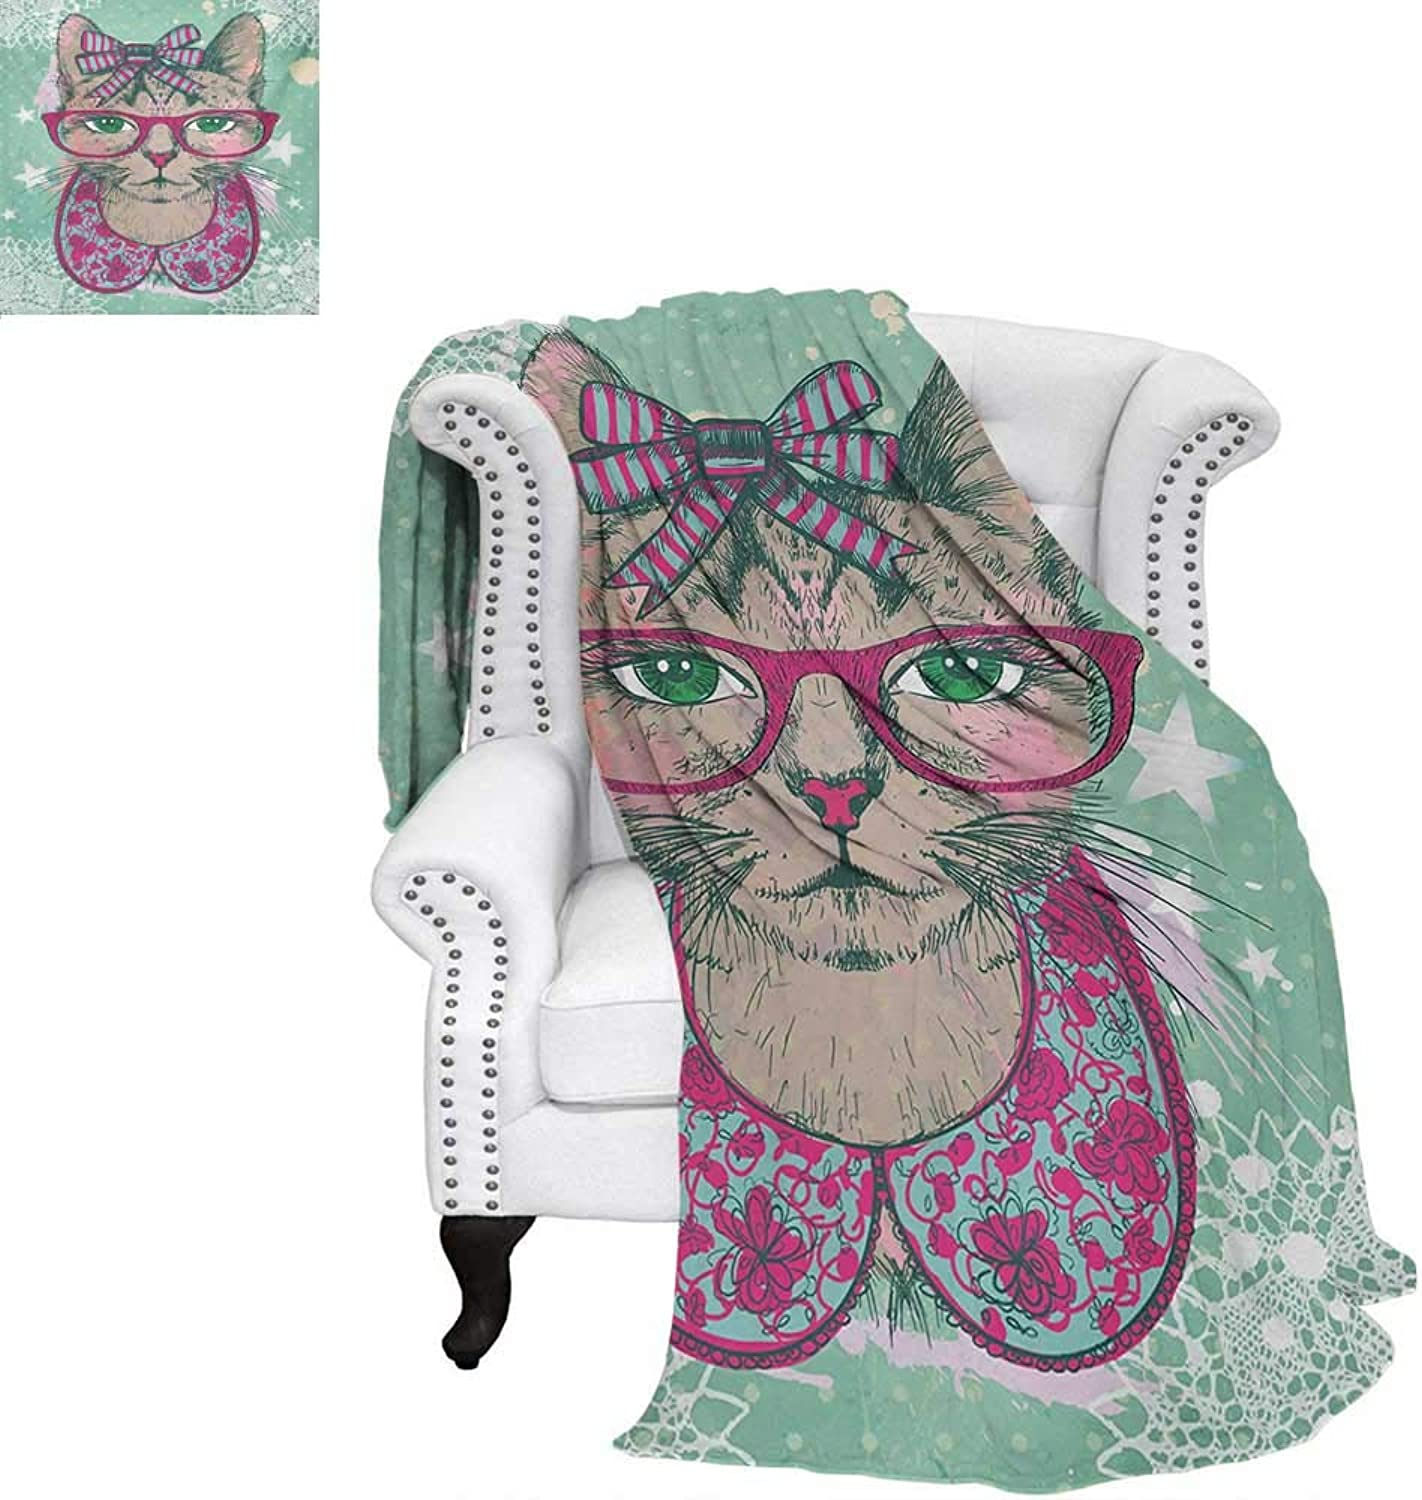 Warmfamily Cat Velvet Plush Throw Blanket Fashion Cat in Hipster Glasses and Lace Collarette Bow Vintage Humgoldus Graphic Throw Blanket 60 x50  Pink Mint Green